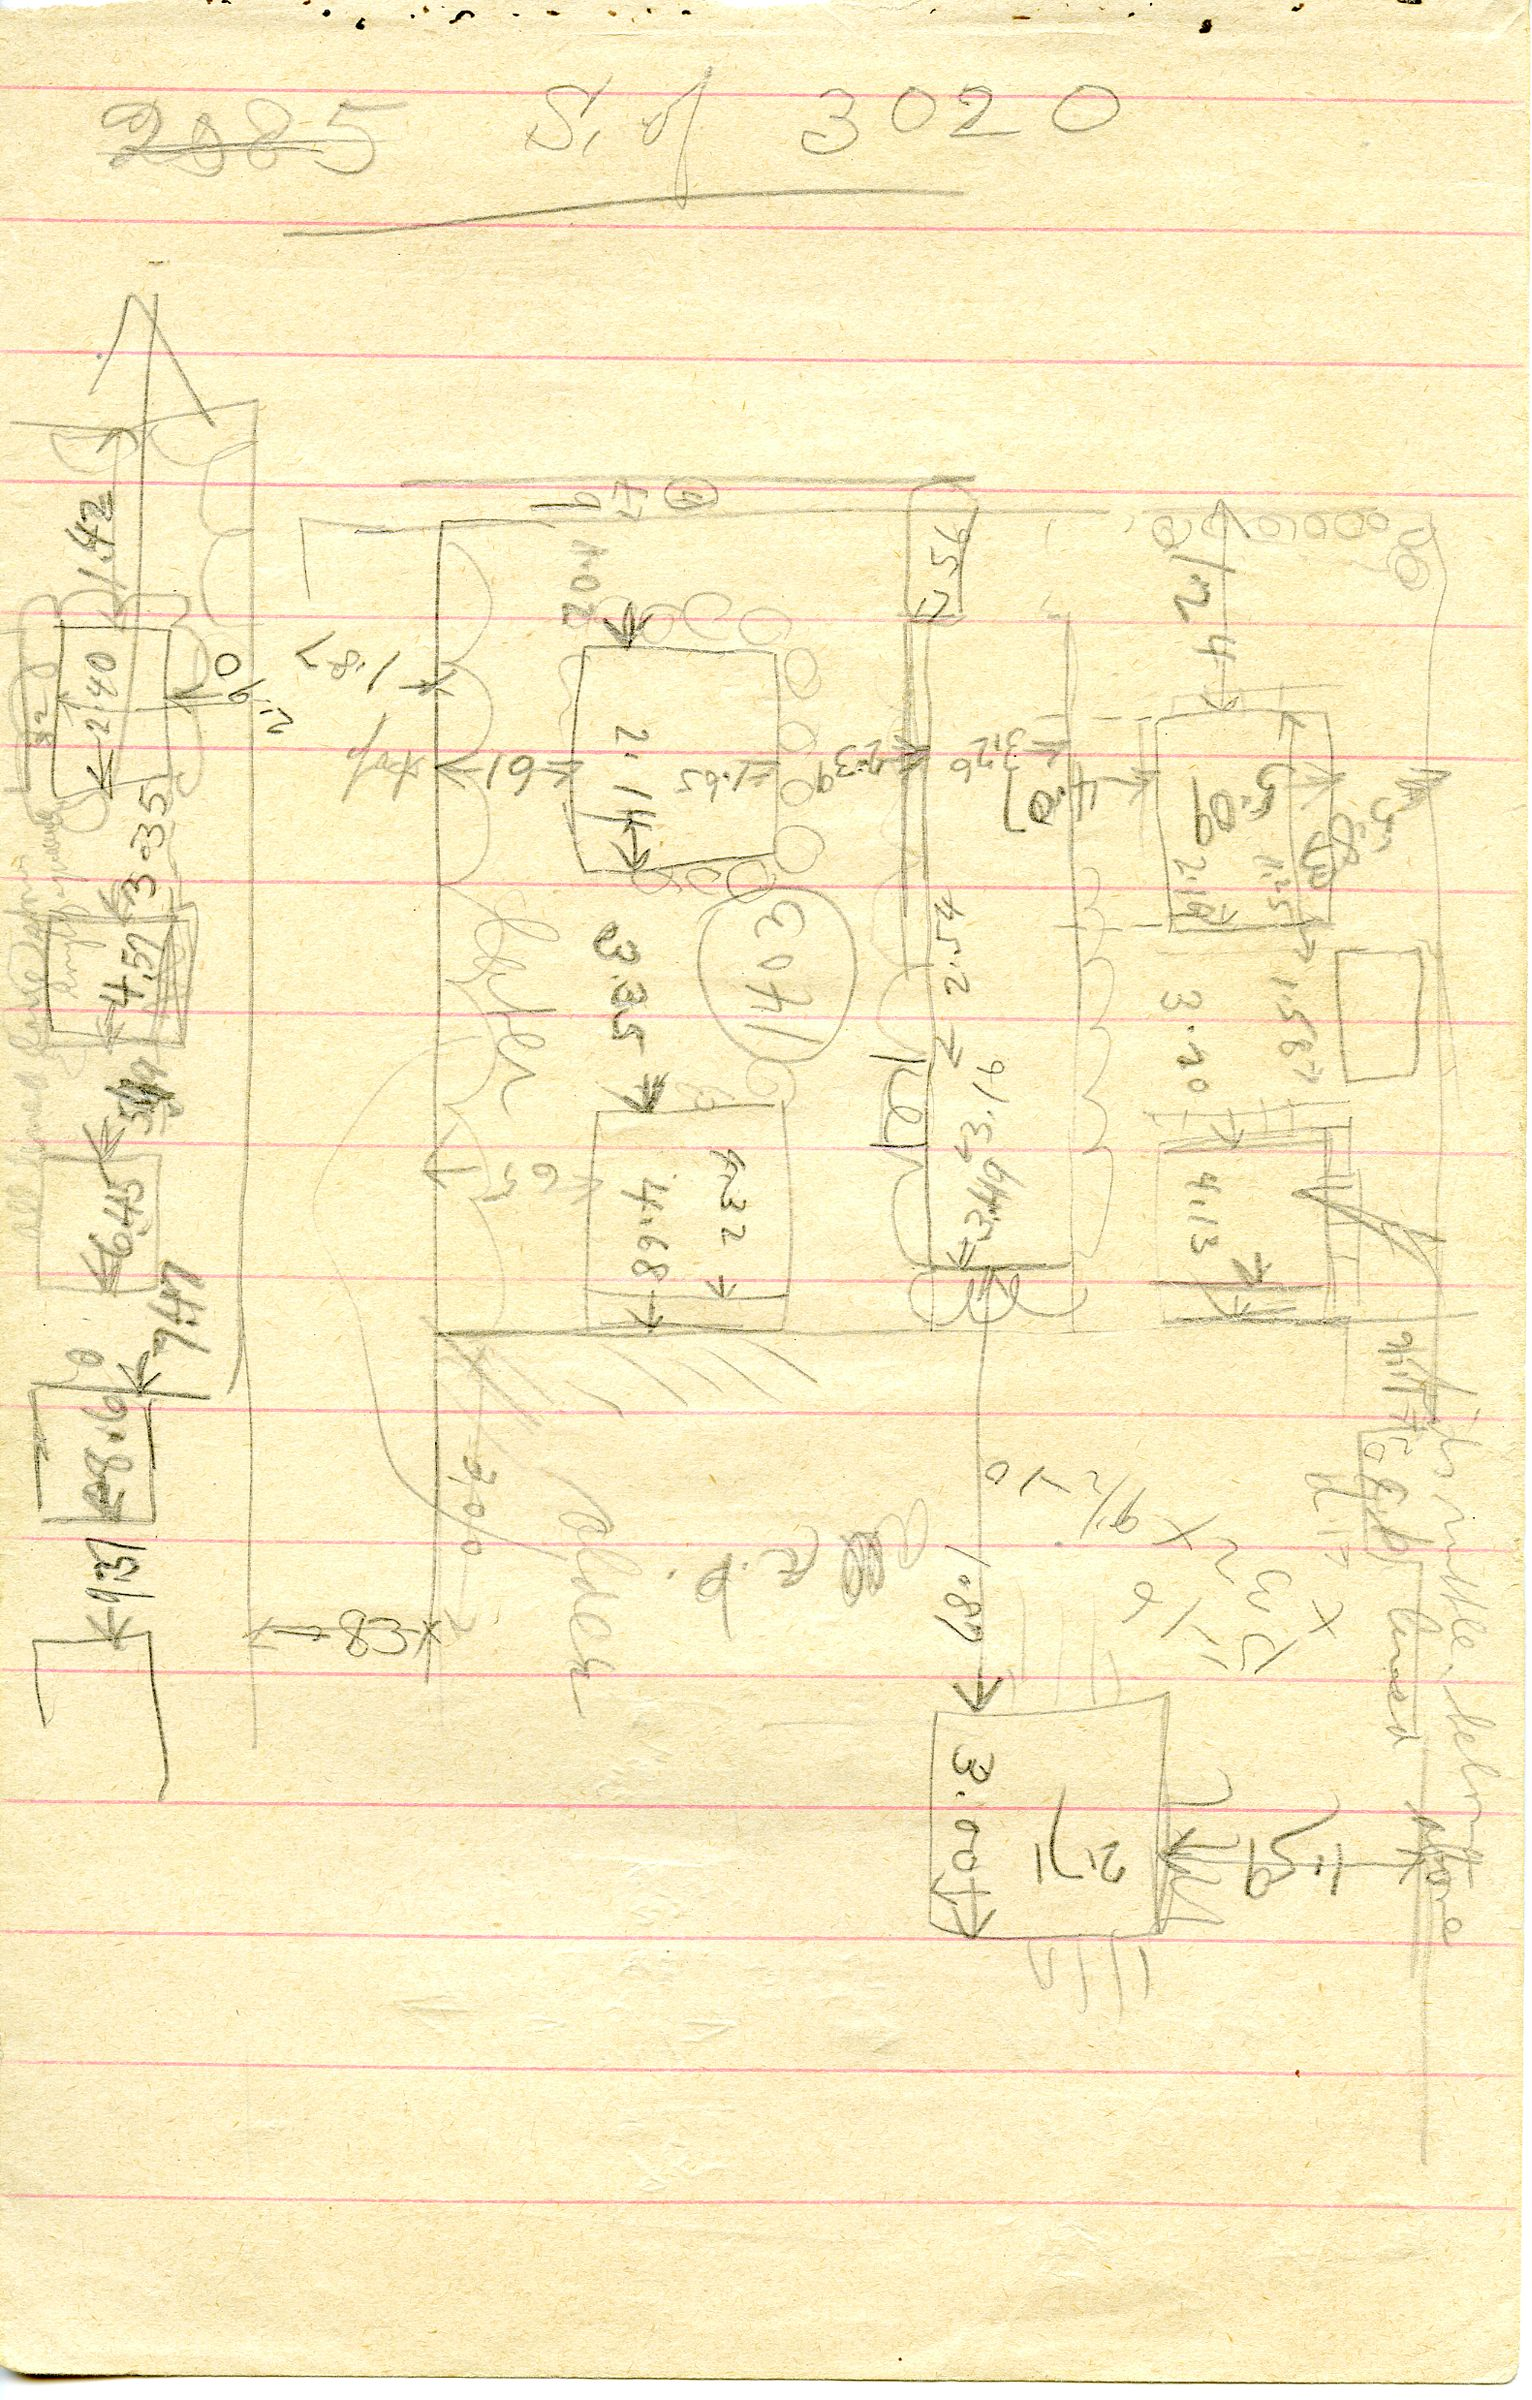 Maps and plans: Sketch plan of G 1402, G 1403, G 1413